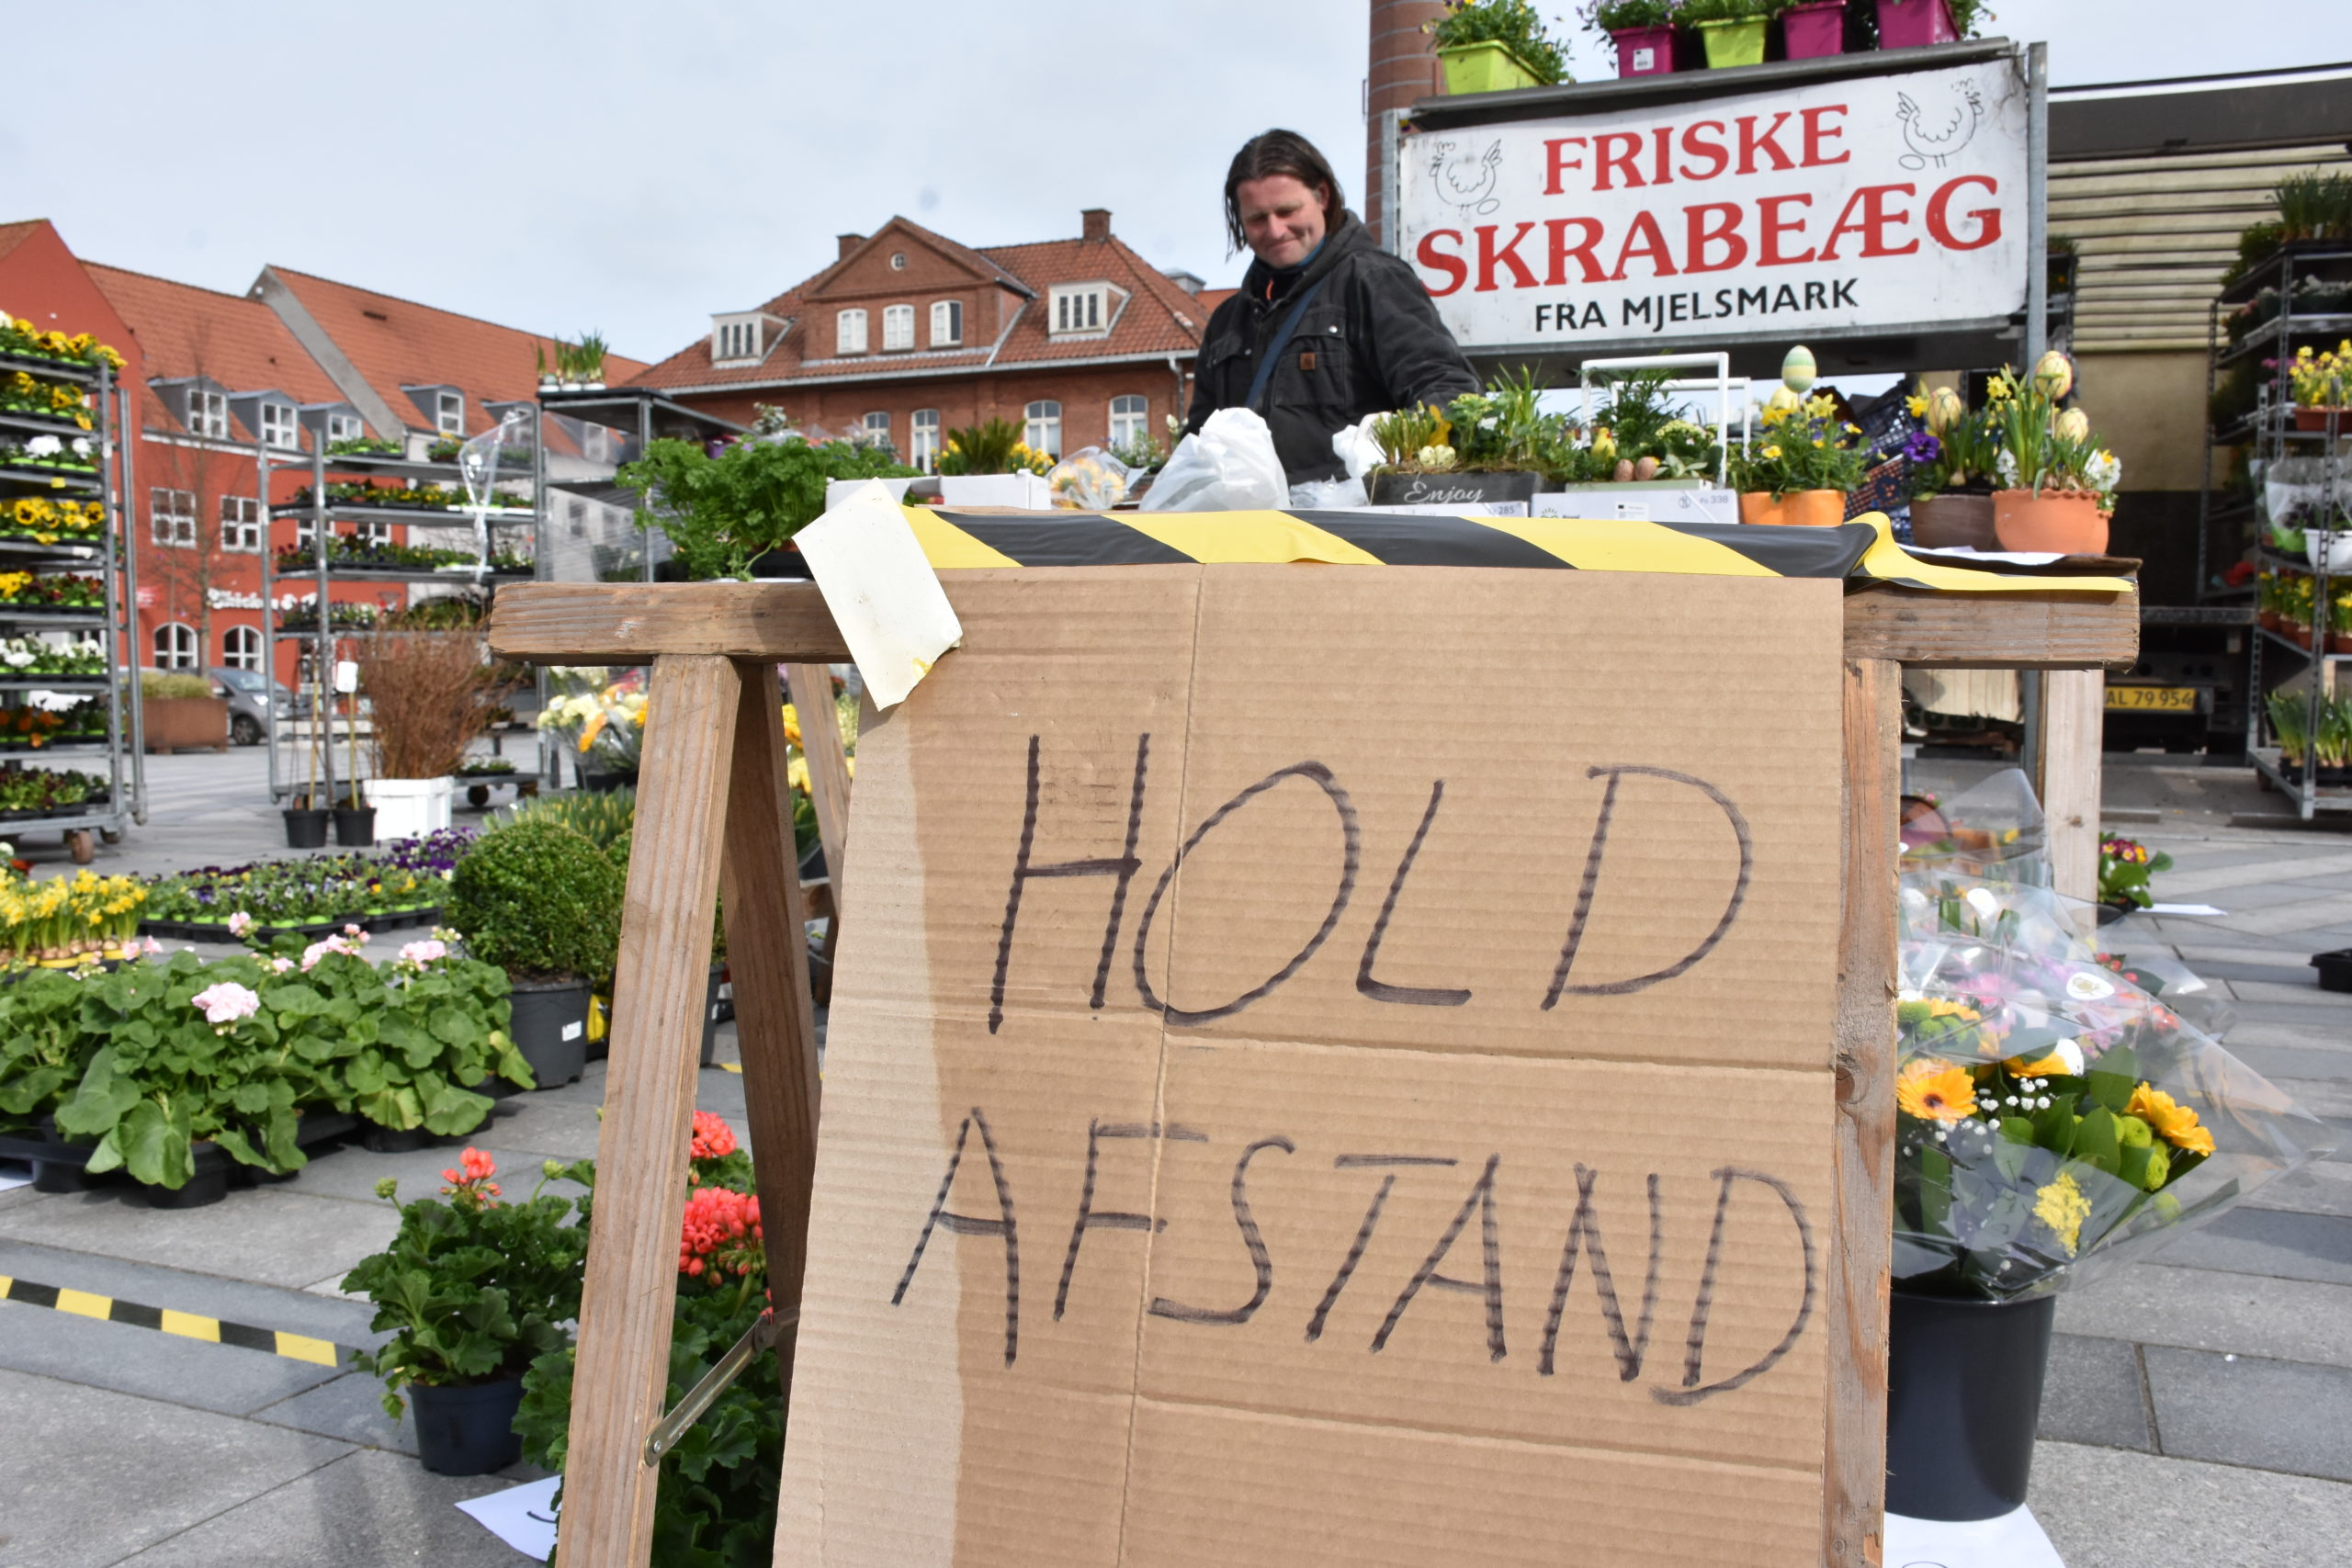 ''This is our livelihood'': A small market fights to survive the lockdown